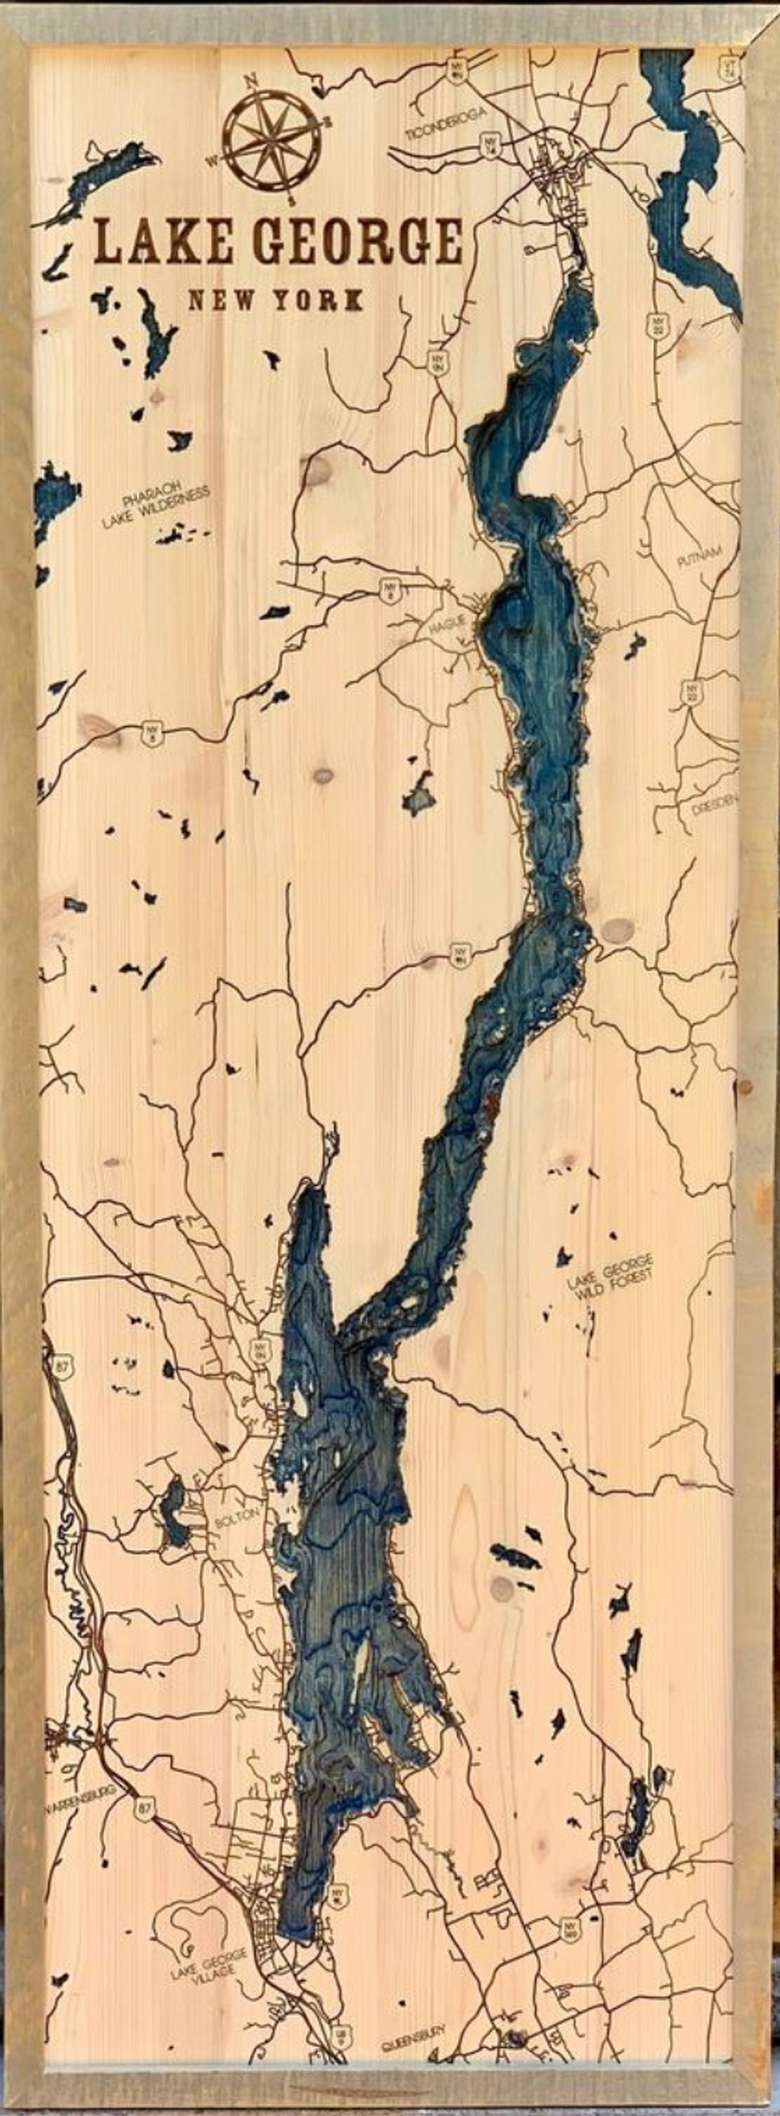 Locally Handcrafted Map of Lake George.